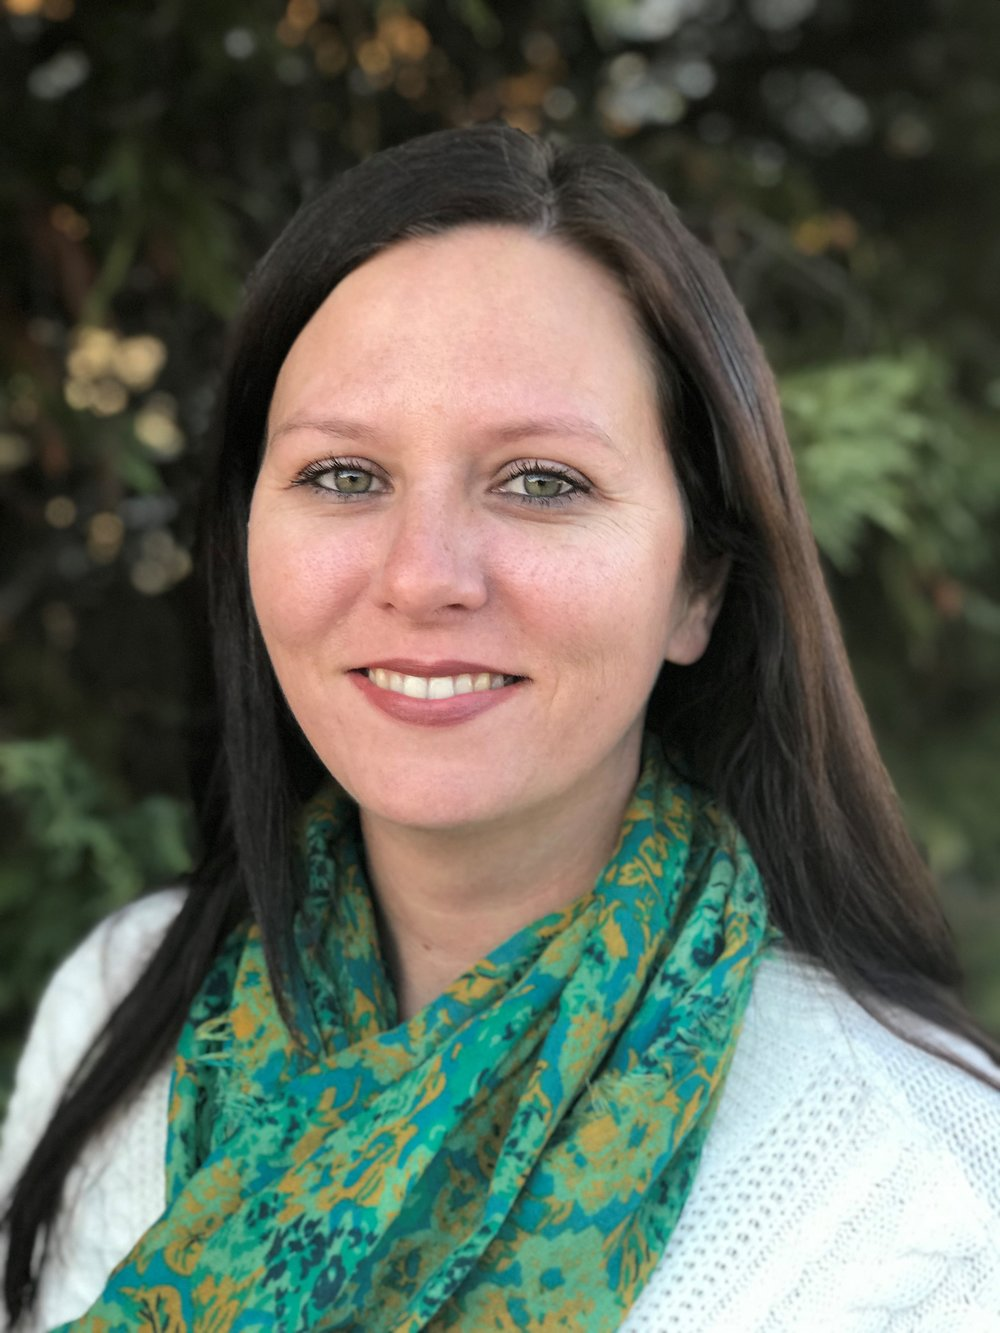 RACHELLE WICKWAREis our closing agent professional at the Gulf Shores location.We are excited by the energy, professionalism, and expertise she brings to the ReaLand Title team. She travels to Foley, Elberta, Orange Beach and anywhere in between to make the closing process easy for your customer! -